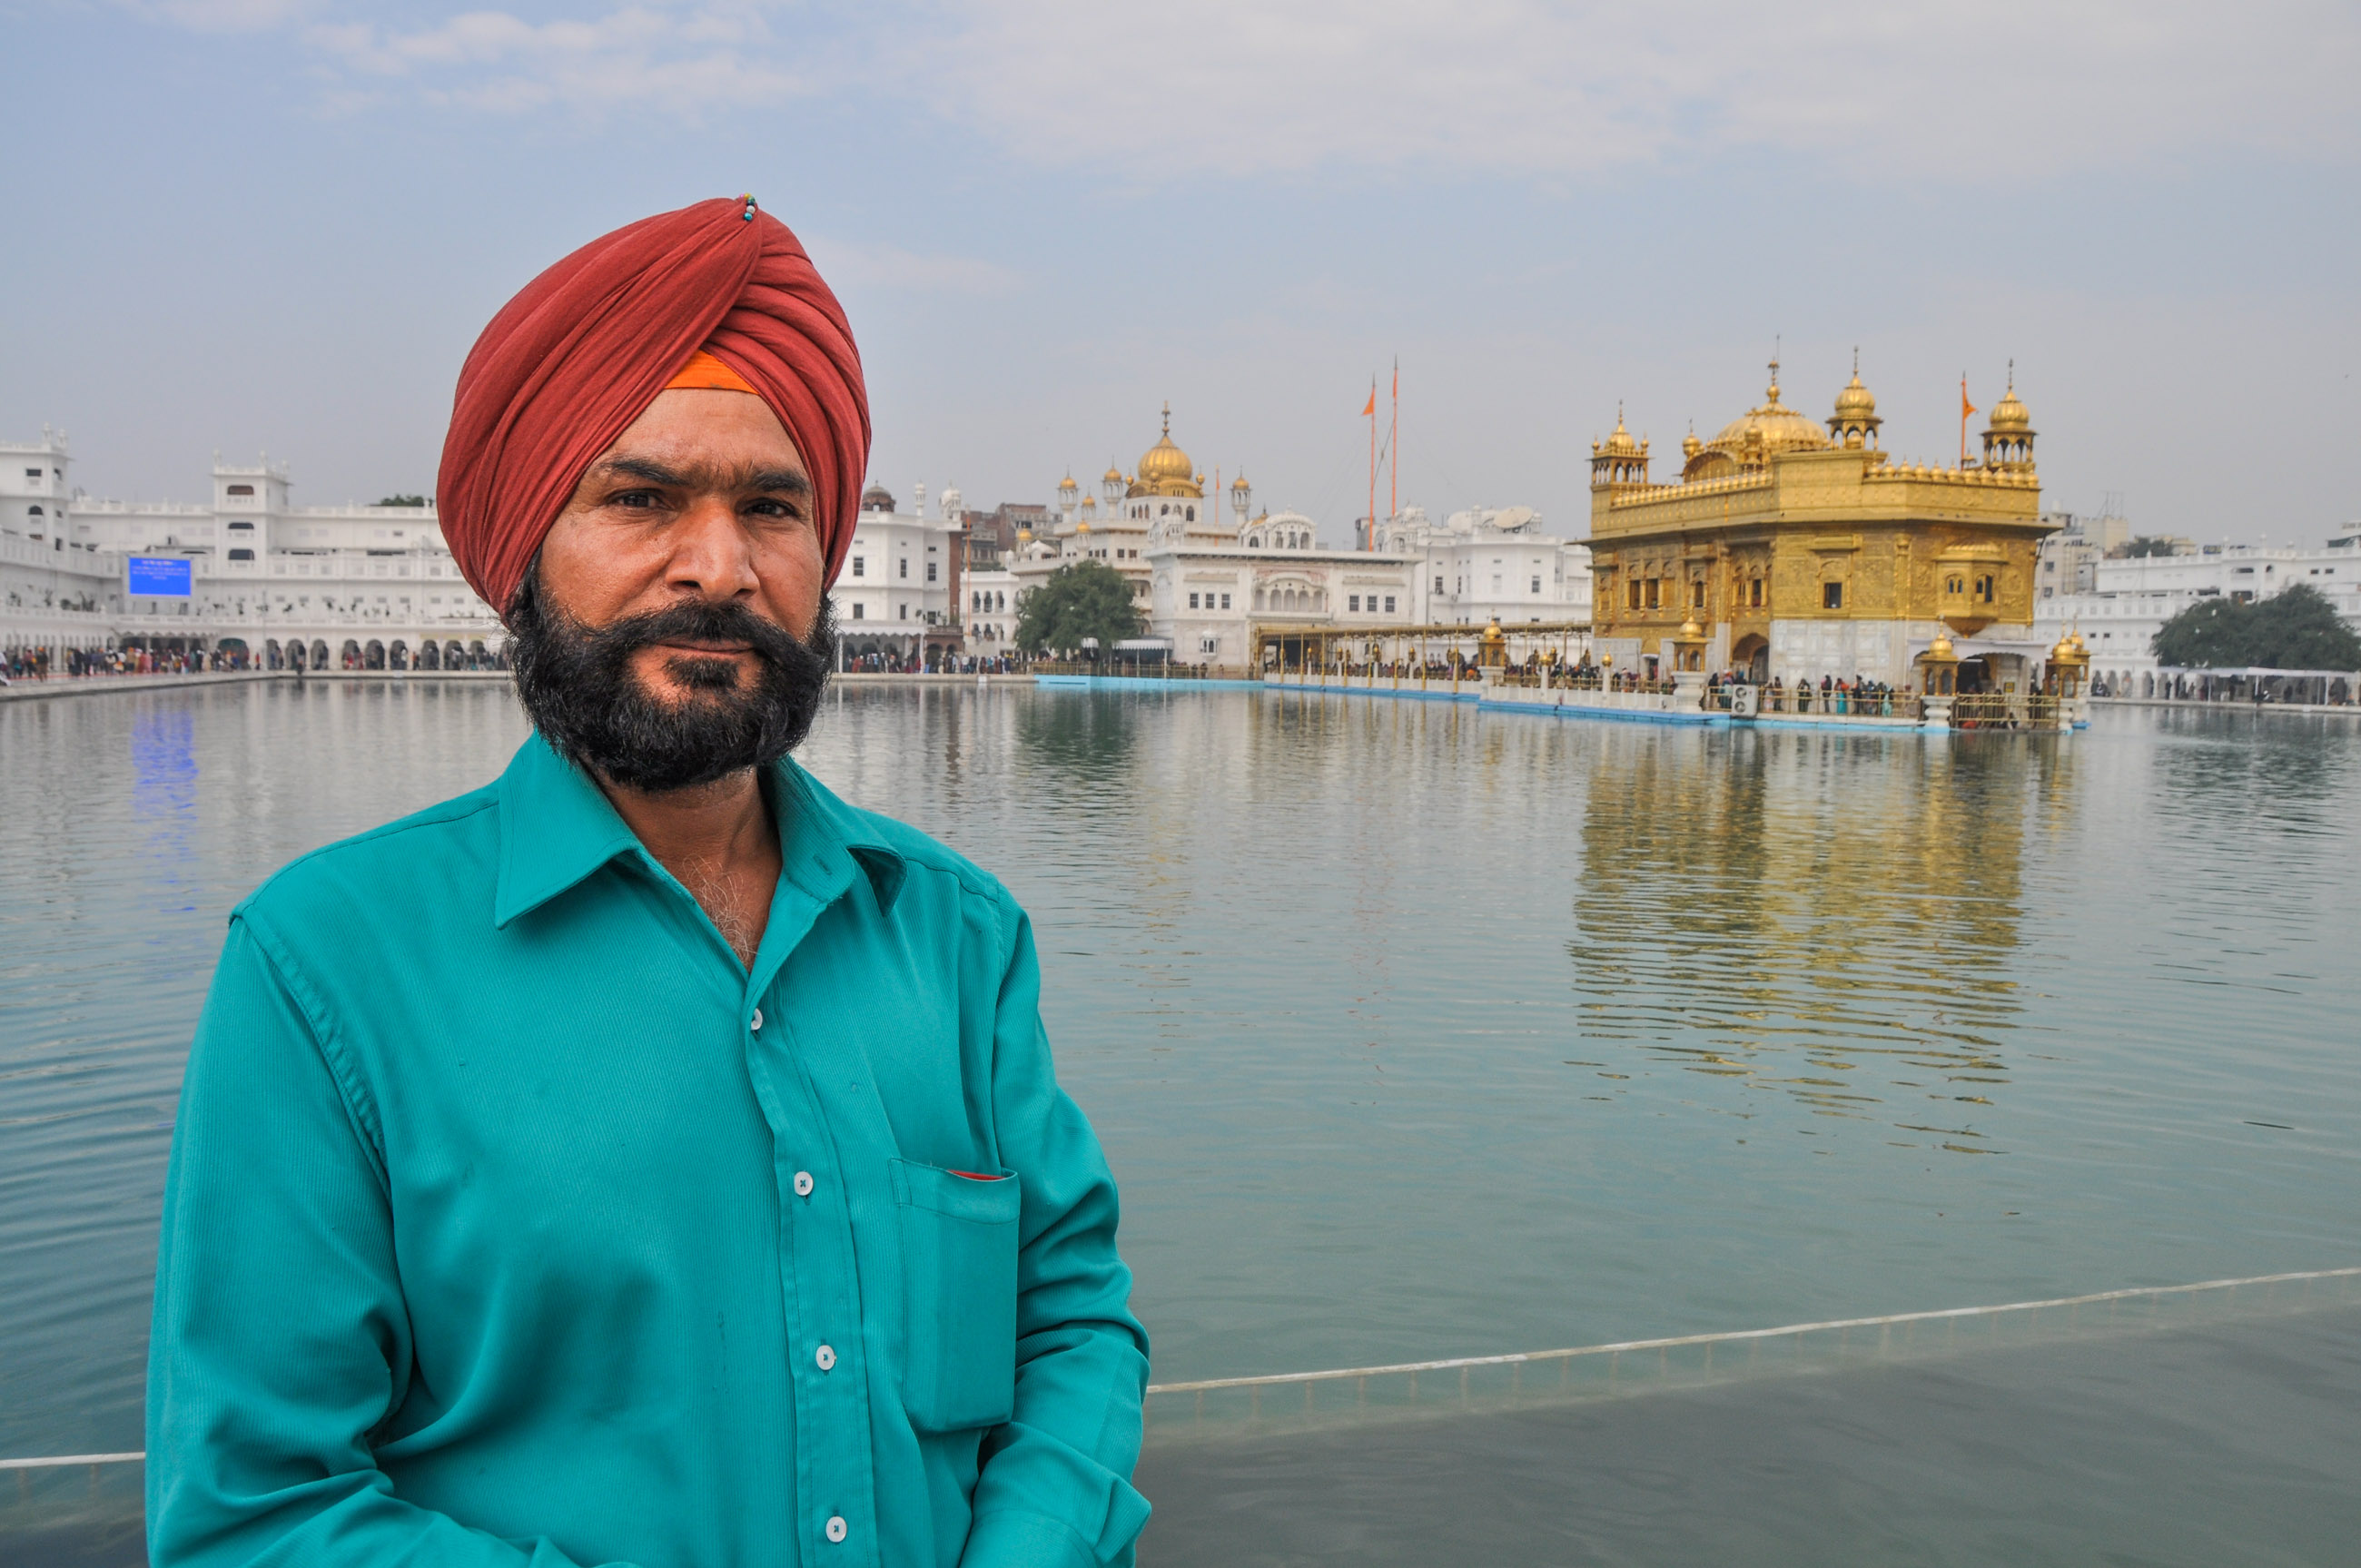 https://bubo.sk/uploads/galleries/4920/tomas_kubus_india_amritsar_dsc_0115.jpg